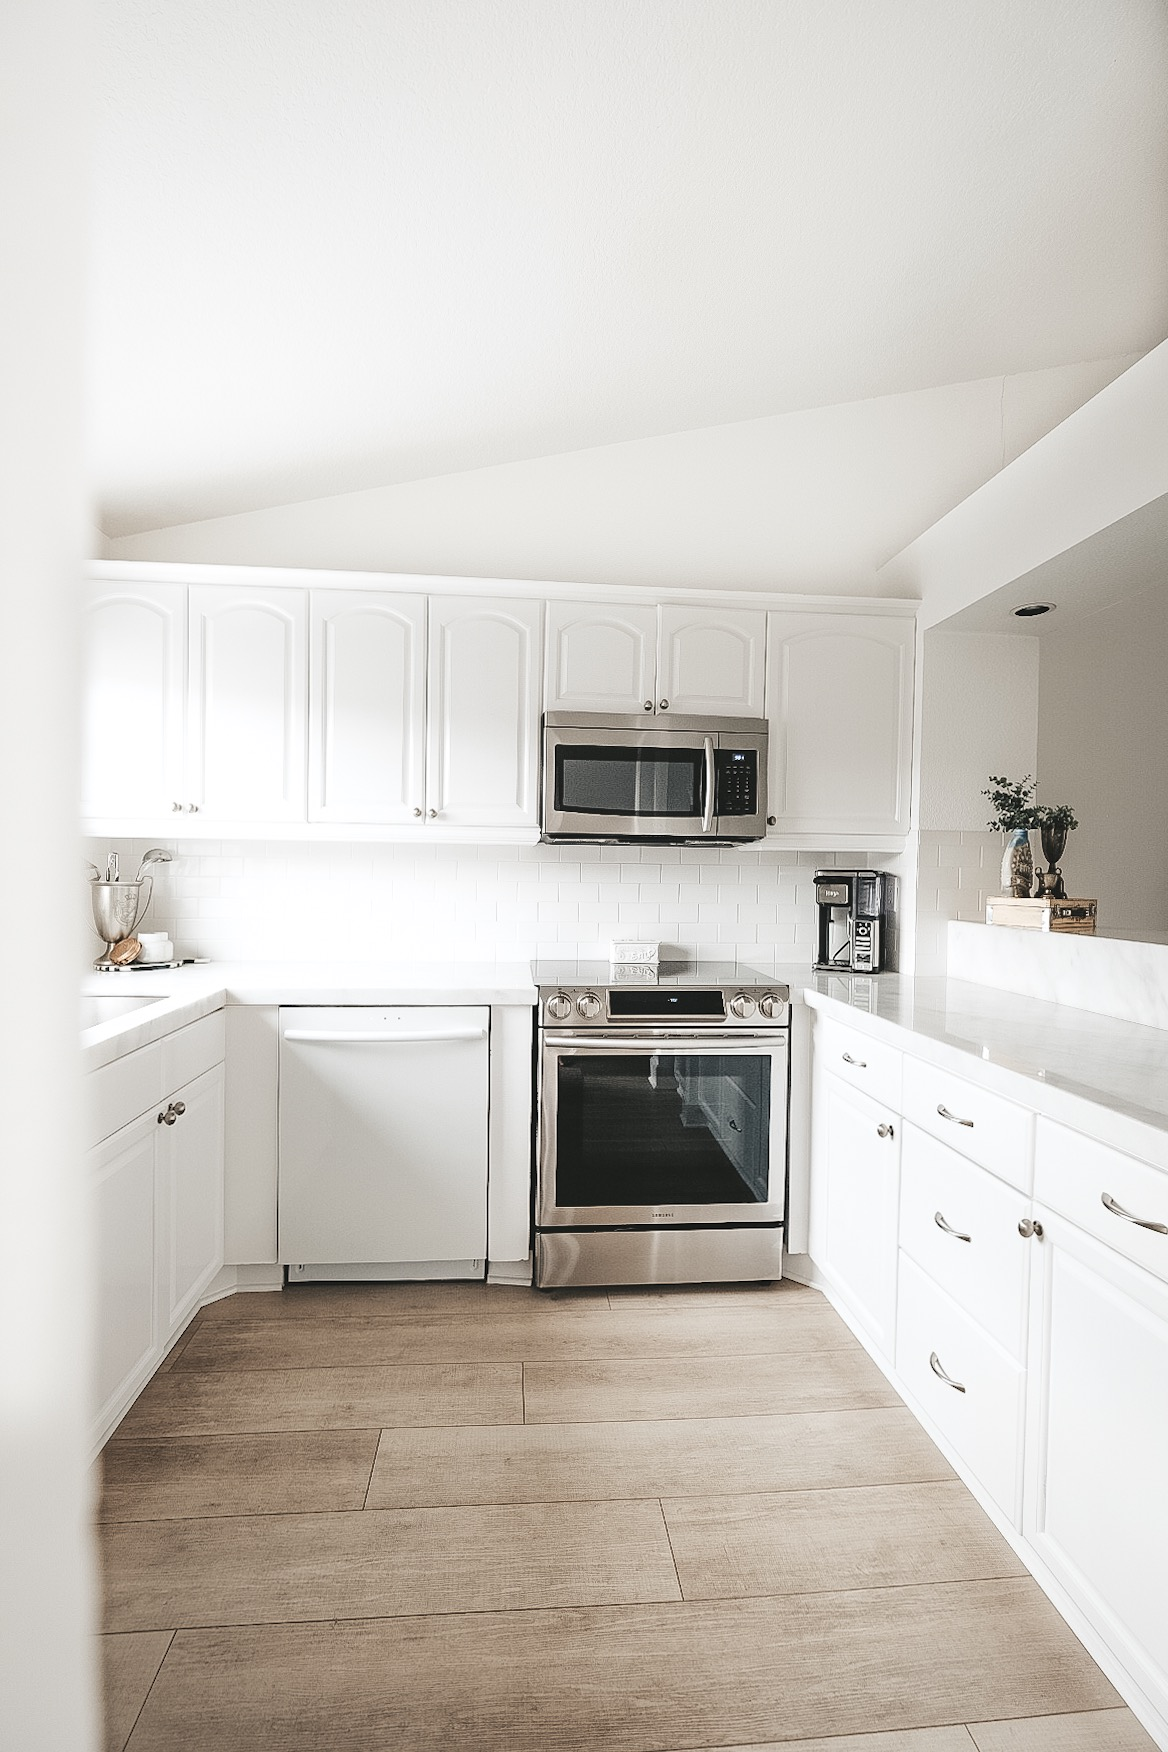 Pros and cons of marble countertops in kitchens and bathrooms.  White kitchen with marble countertops and silver hardware.  Light wood flooring.  Light wood LVP floors.